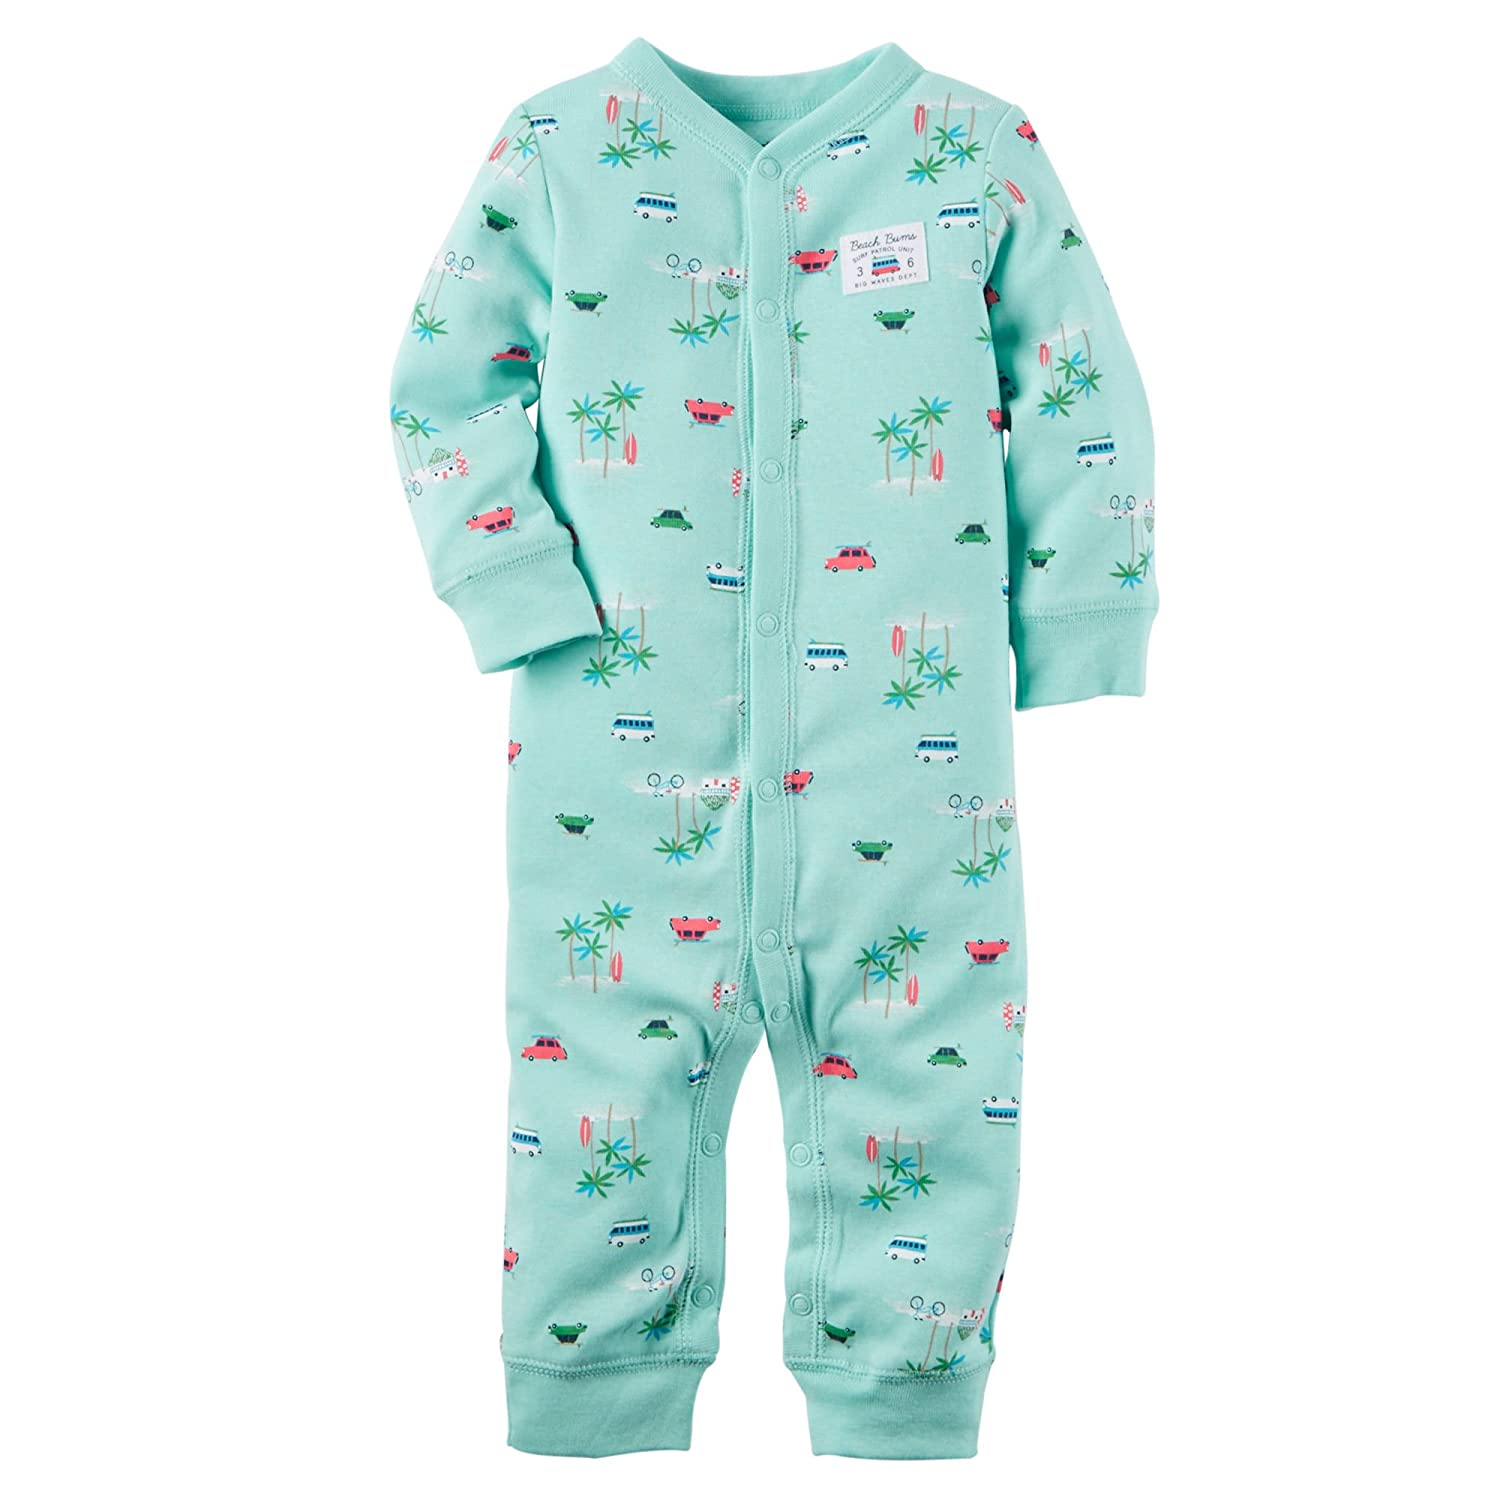 com carter s baby boys cotton footless sleep and play com carter s baby boys cotton footless sleep and play clothing